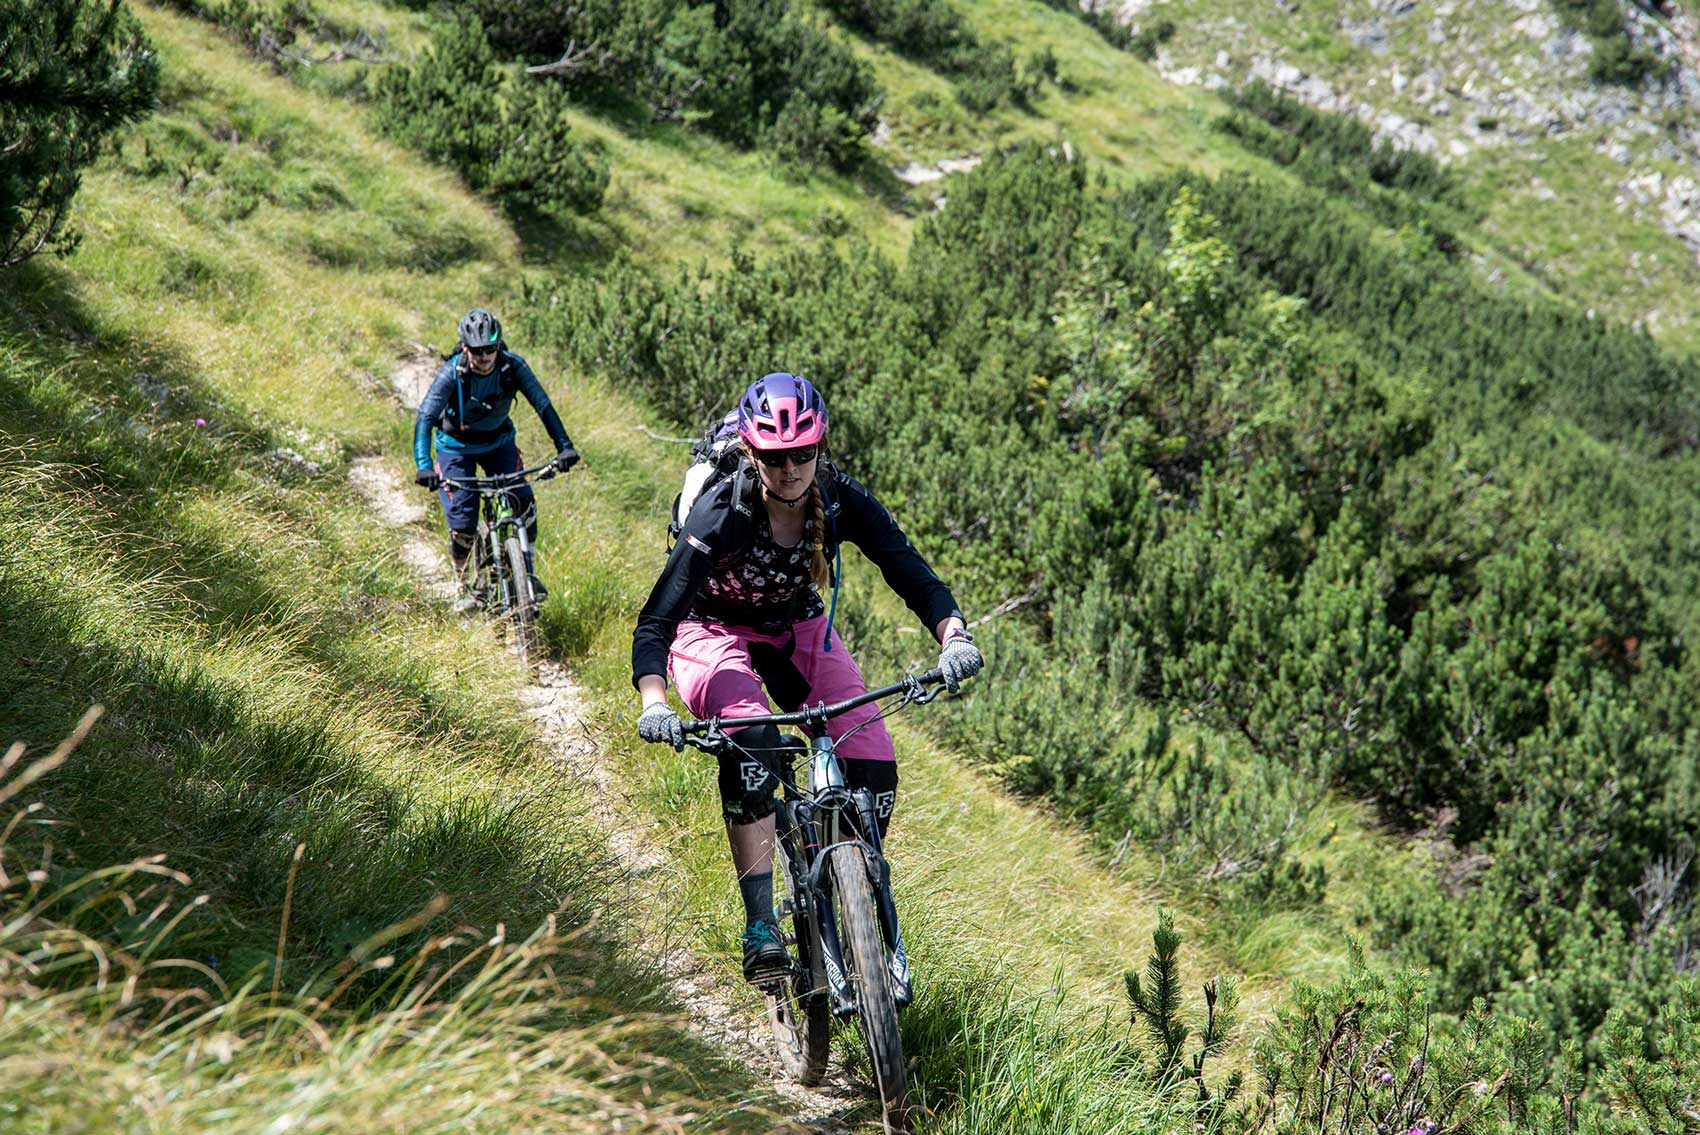 munich-mountain-girls-mtb-ausruestung-frauen-mountainbiken-damen-tassilo-pritzl